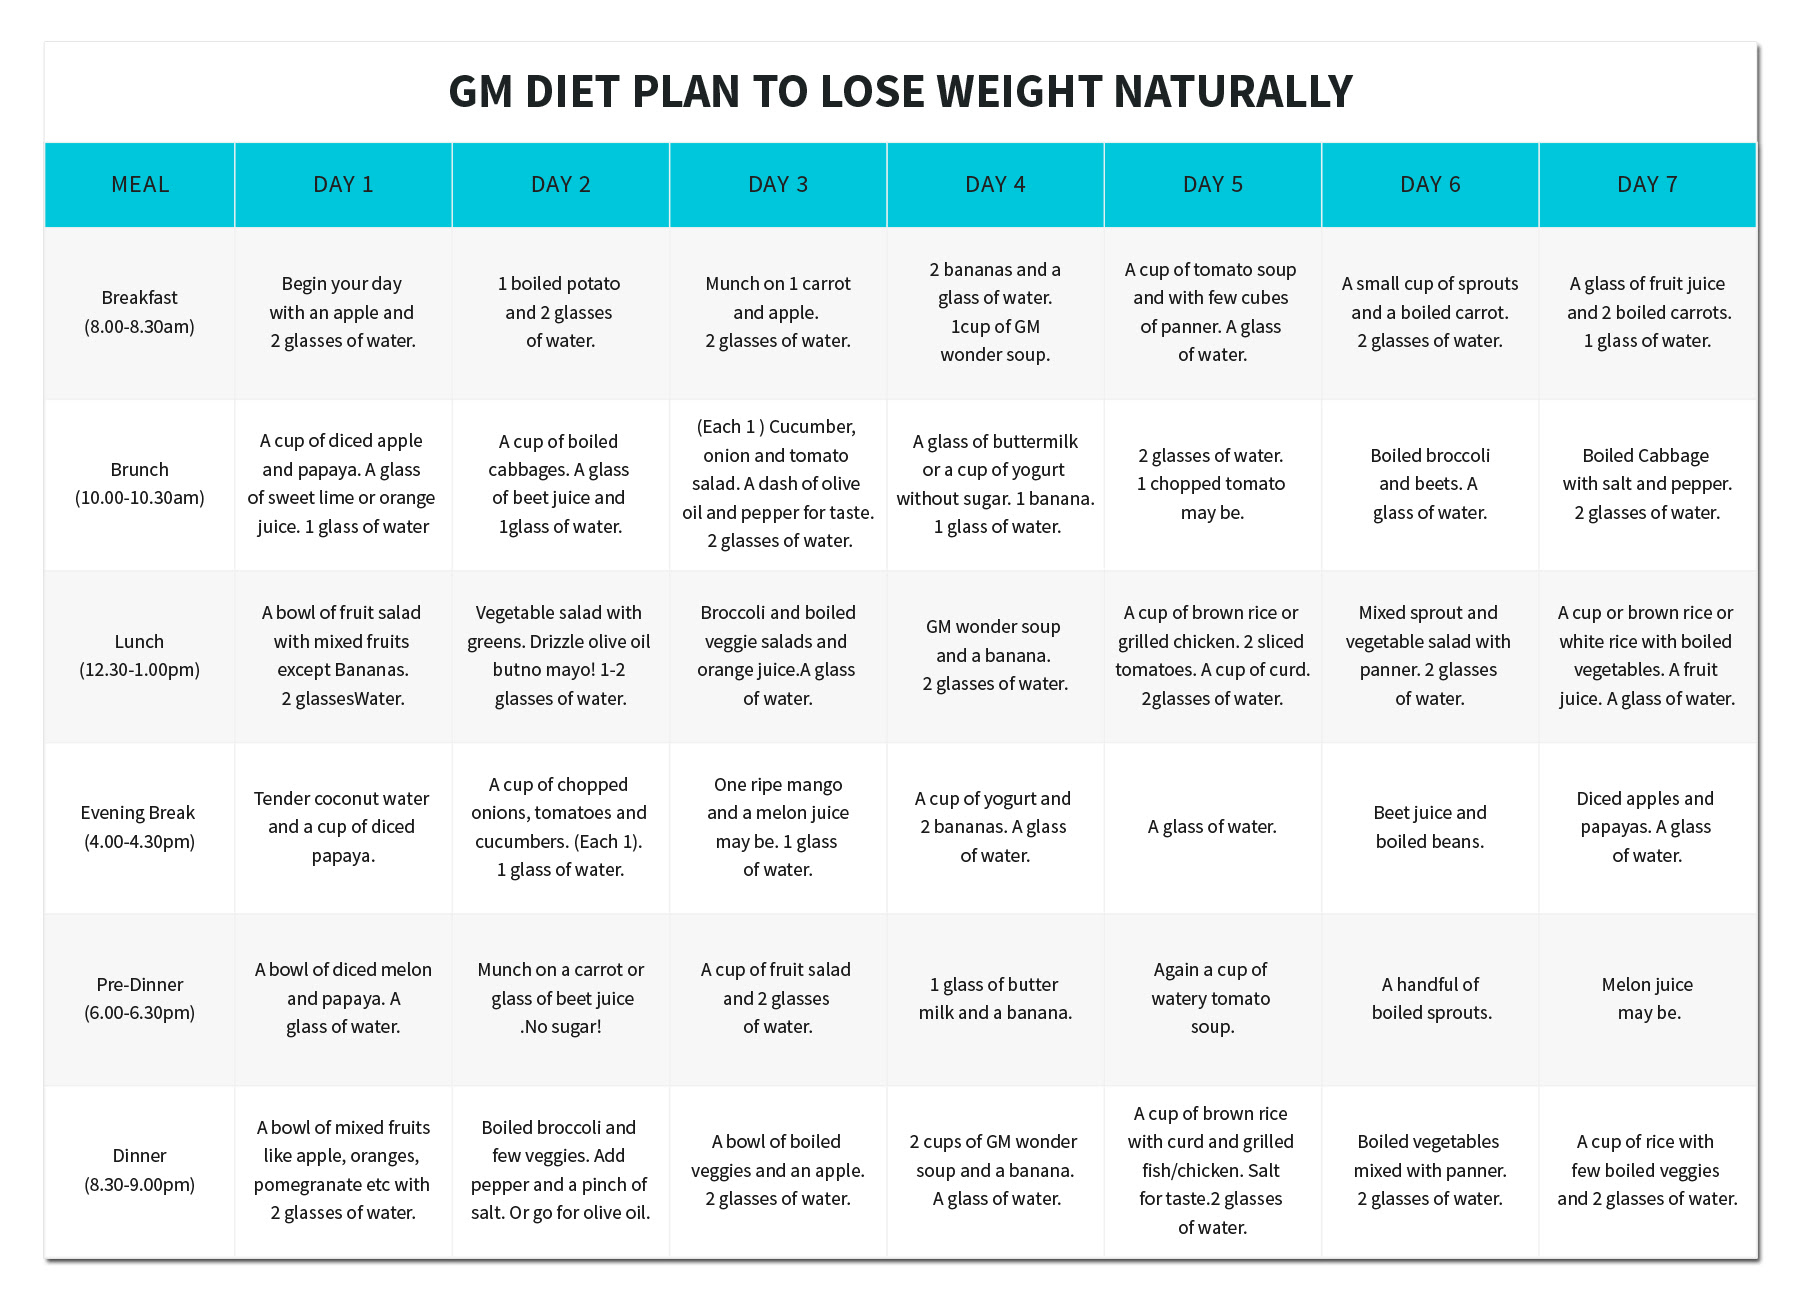 How To Lose Weight Naturally Proven Gm Diet Plan Exercises